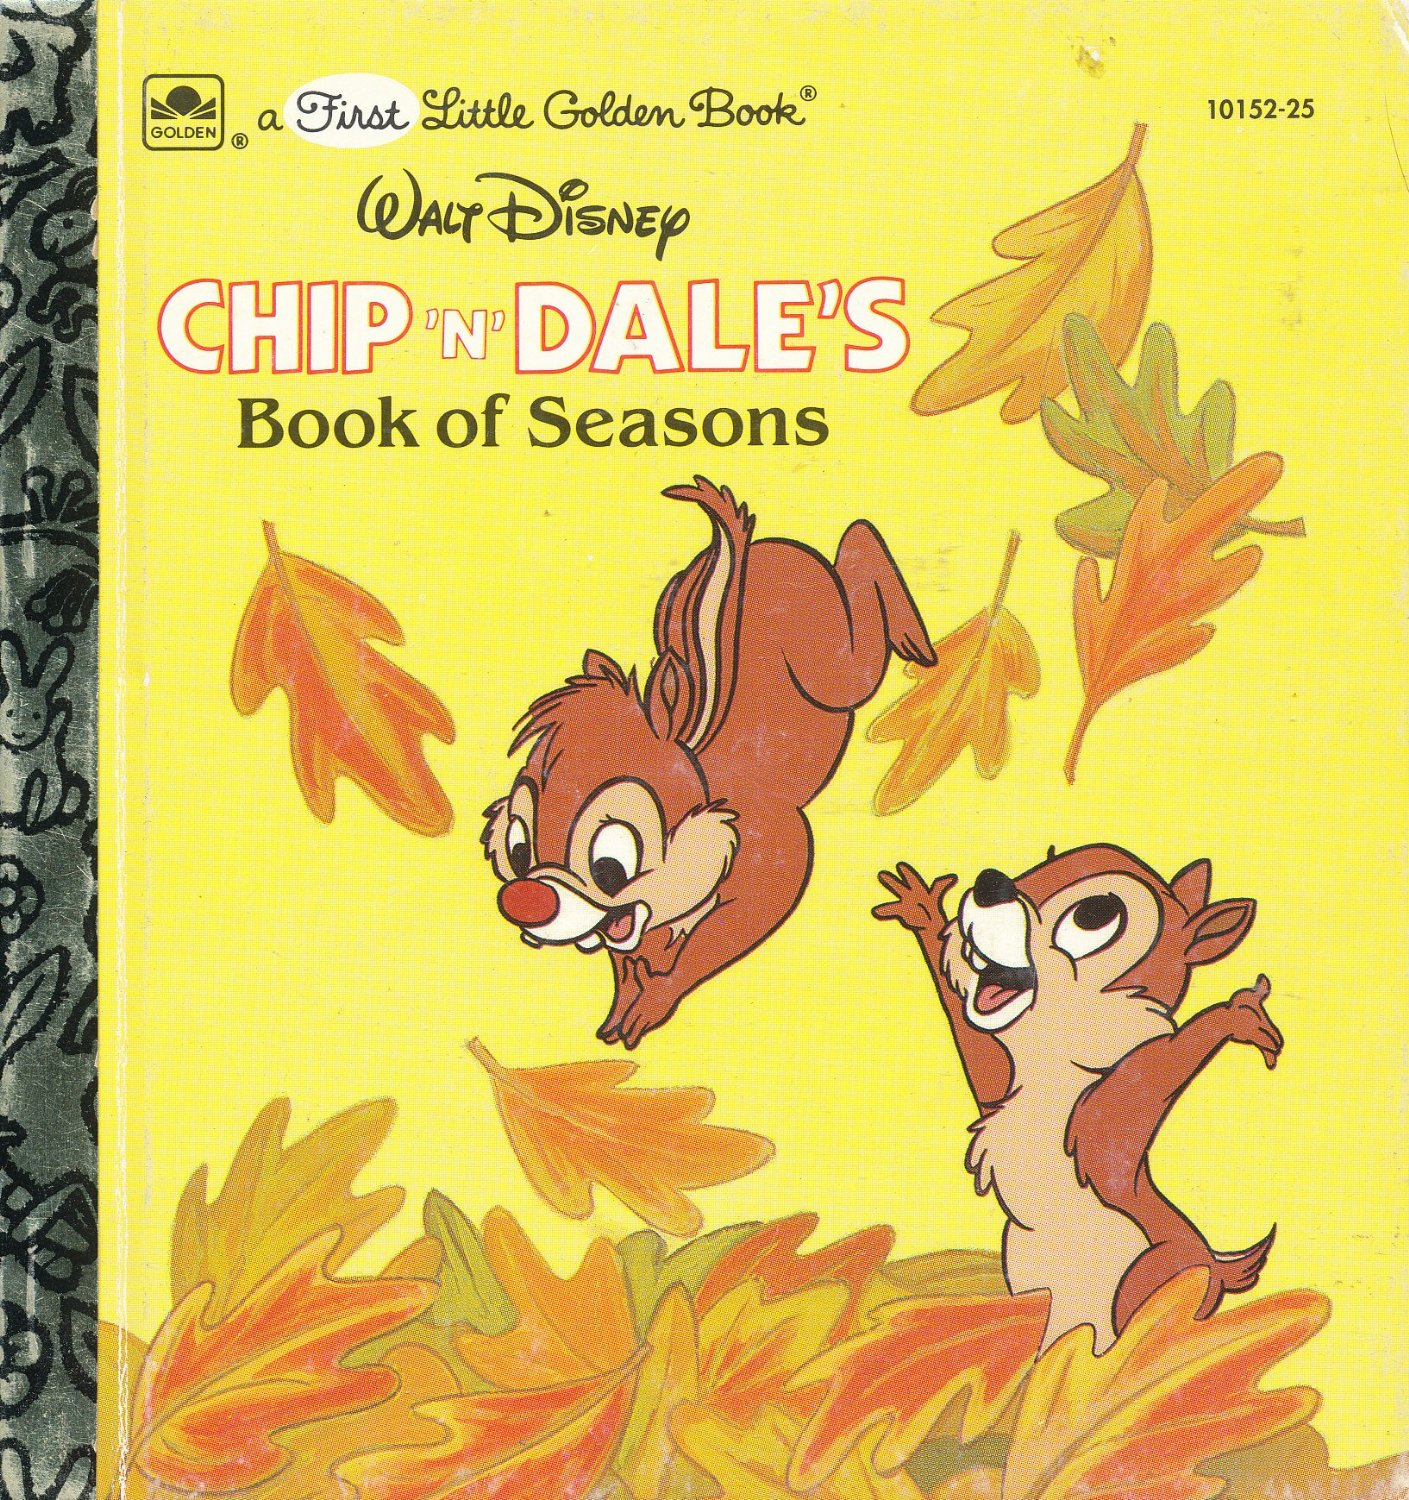 Chip and Dale's Book of Seasons